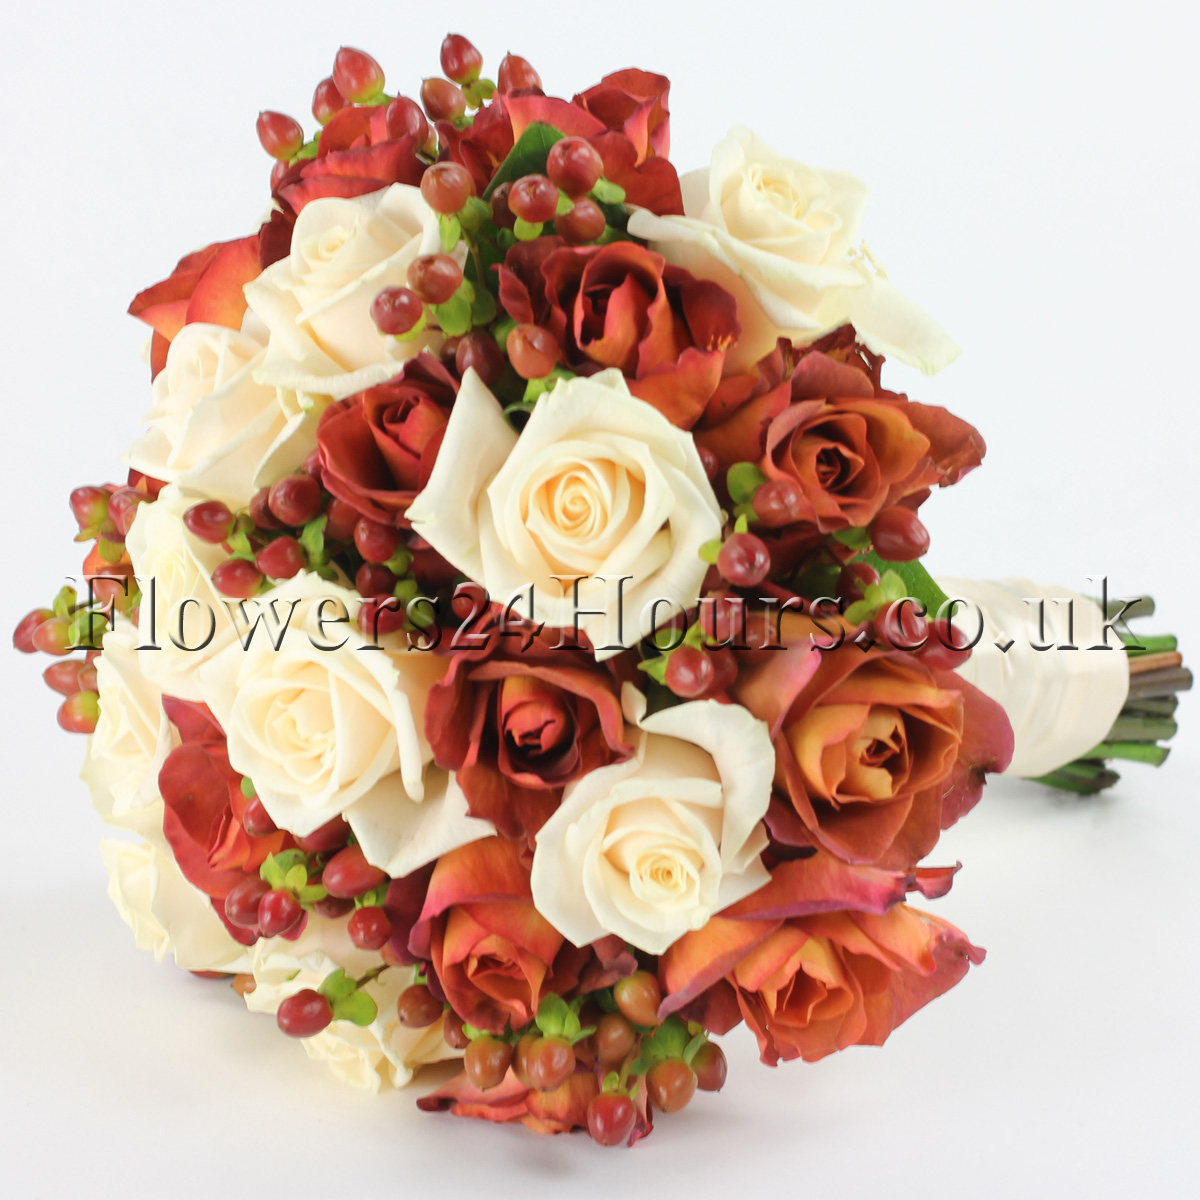 Autumn flowers gifts flowers blog flowers tips and advice brandysnap dhlflorist Images